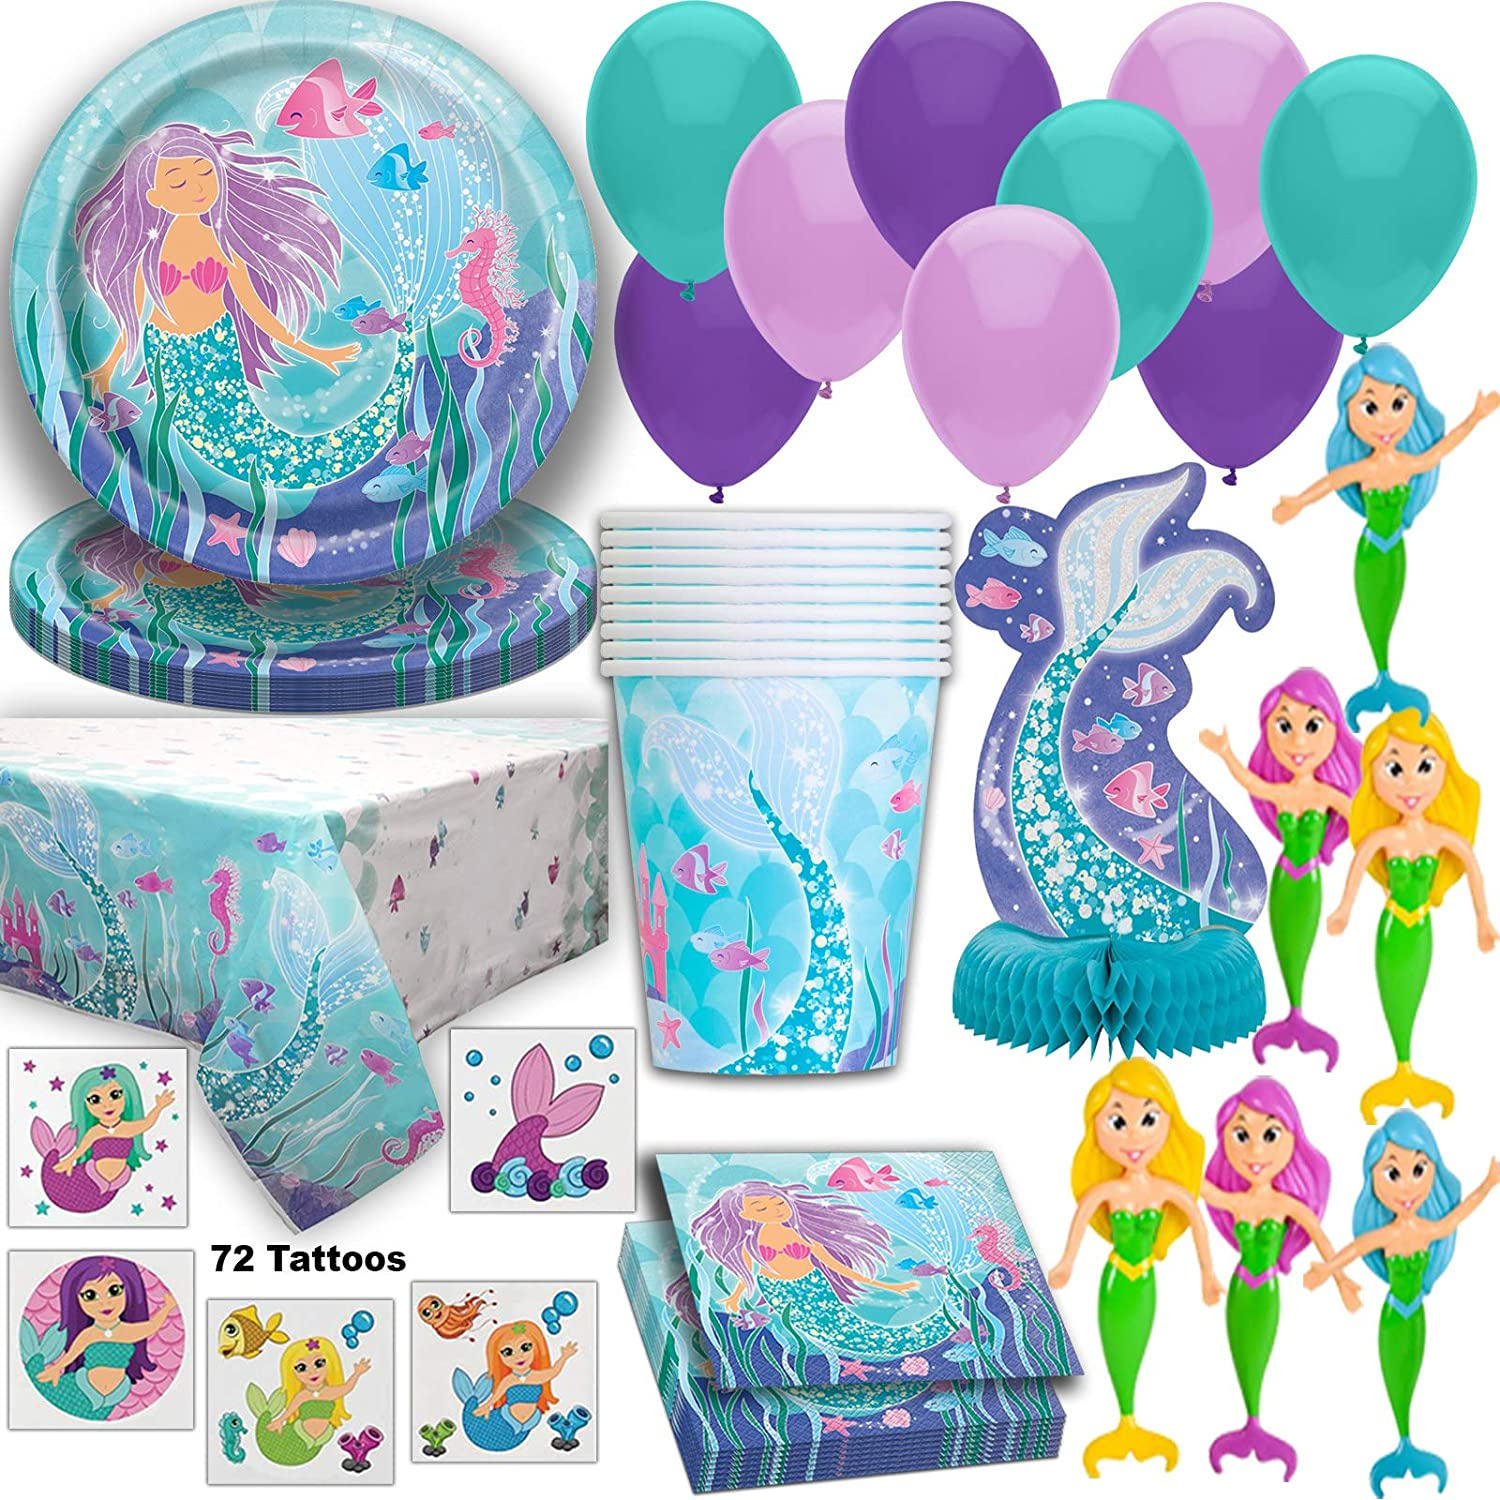 Mermaid Party Supplies for 16 Guests, Plates, Cups, Napkins, Tablecloth, Centerpiece, Balloons, Tattoos, Bendable Dolls - Under the Sea Birthday Amazon.com: Cups